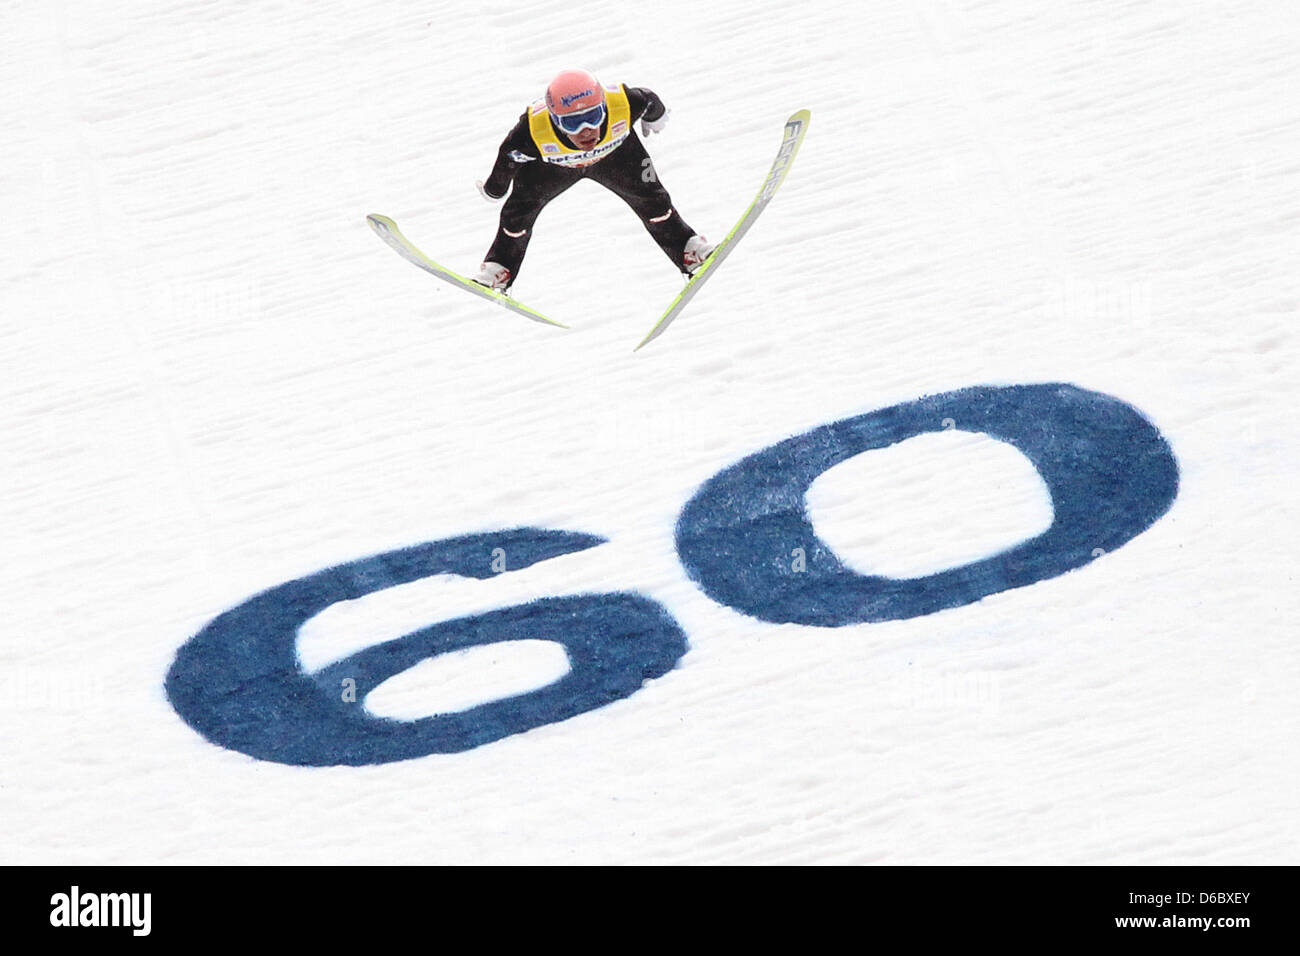 Austrian ski jumper Andreas Kofler jumps during the final round of the third jump at the 60th Four Hills Tournament - Stock Image